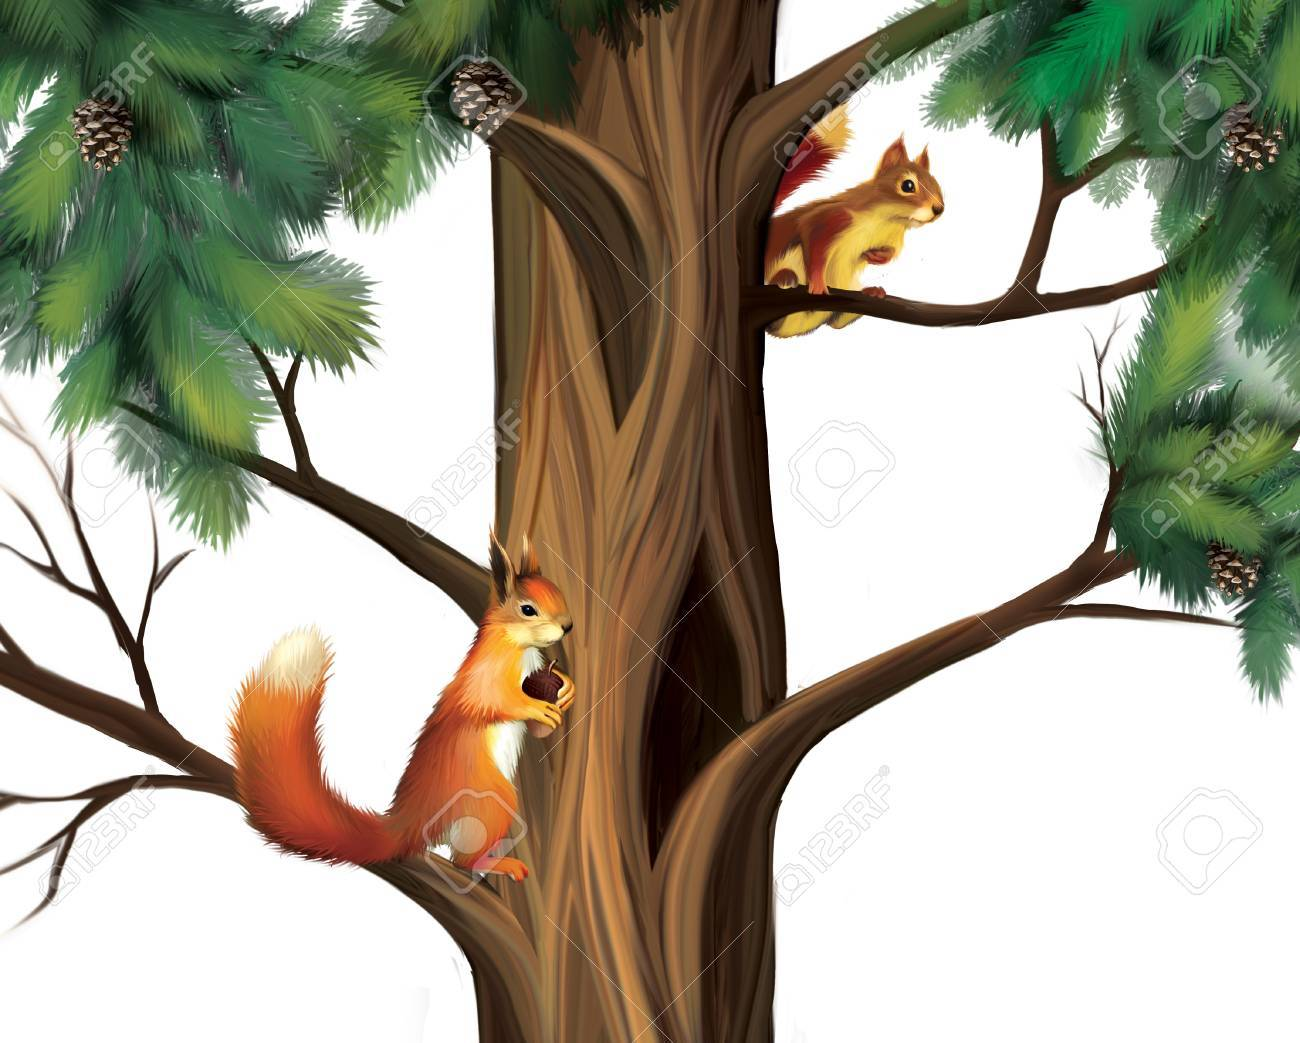 Squirrels on the tree  Two Cute Squirrels Stock Photo - 18379229